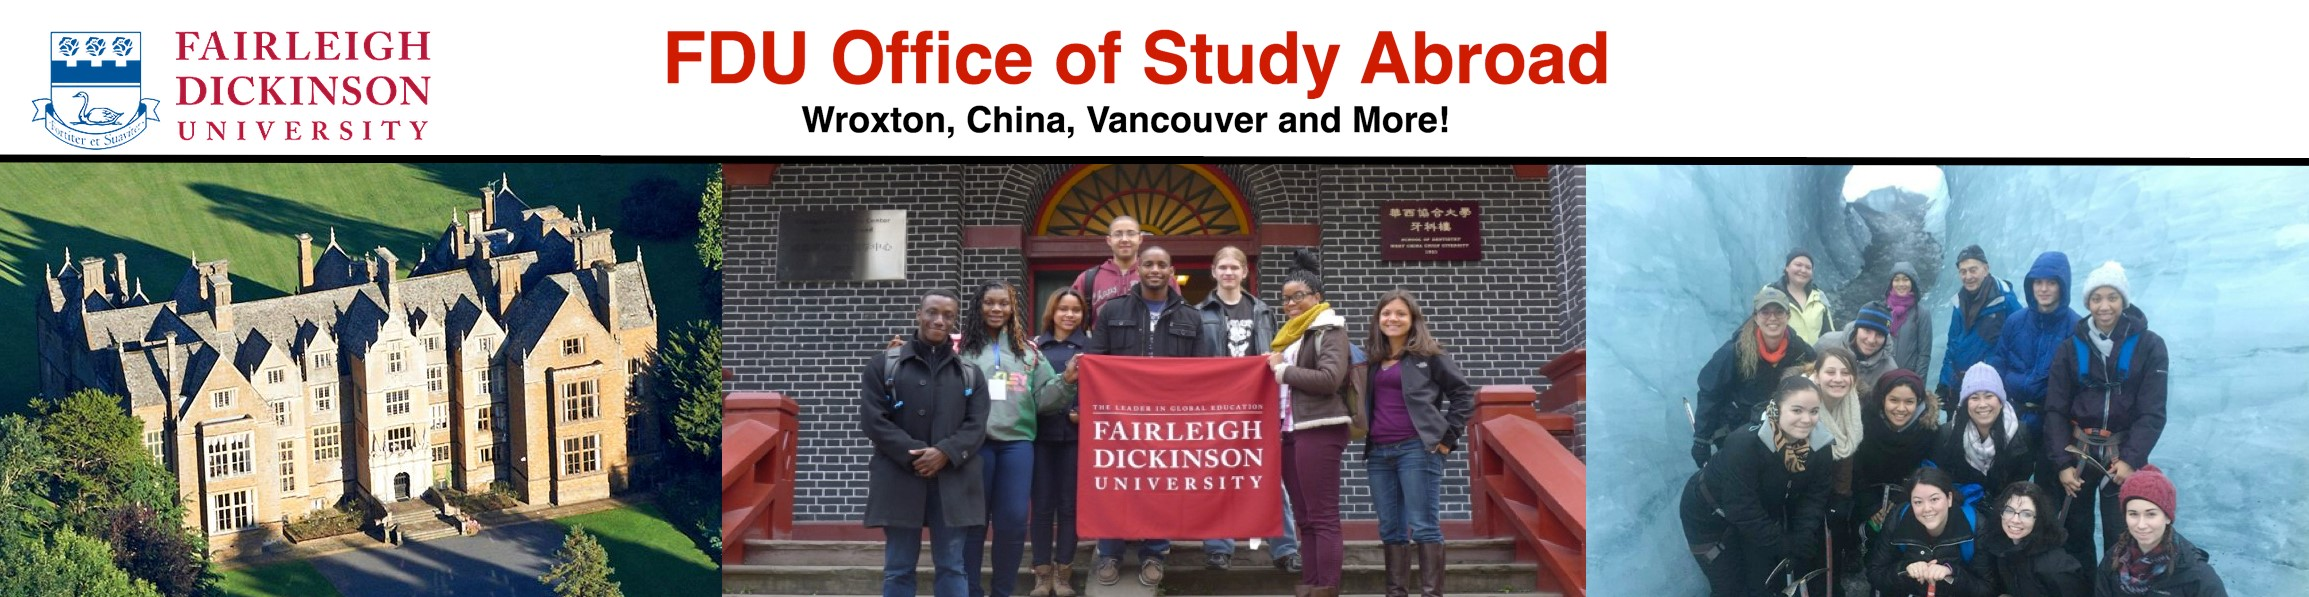 Study Abroad - Fairleigh Dickinson University